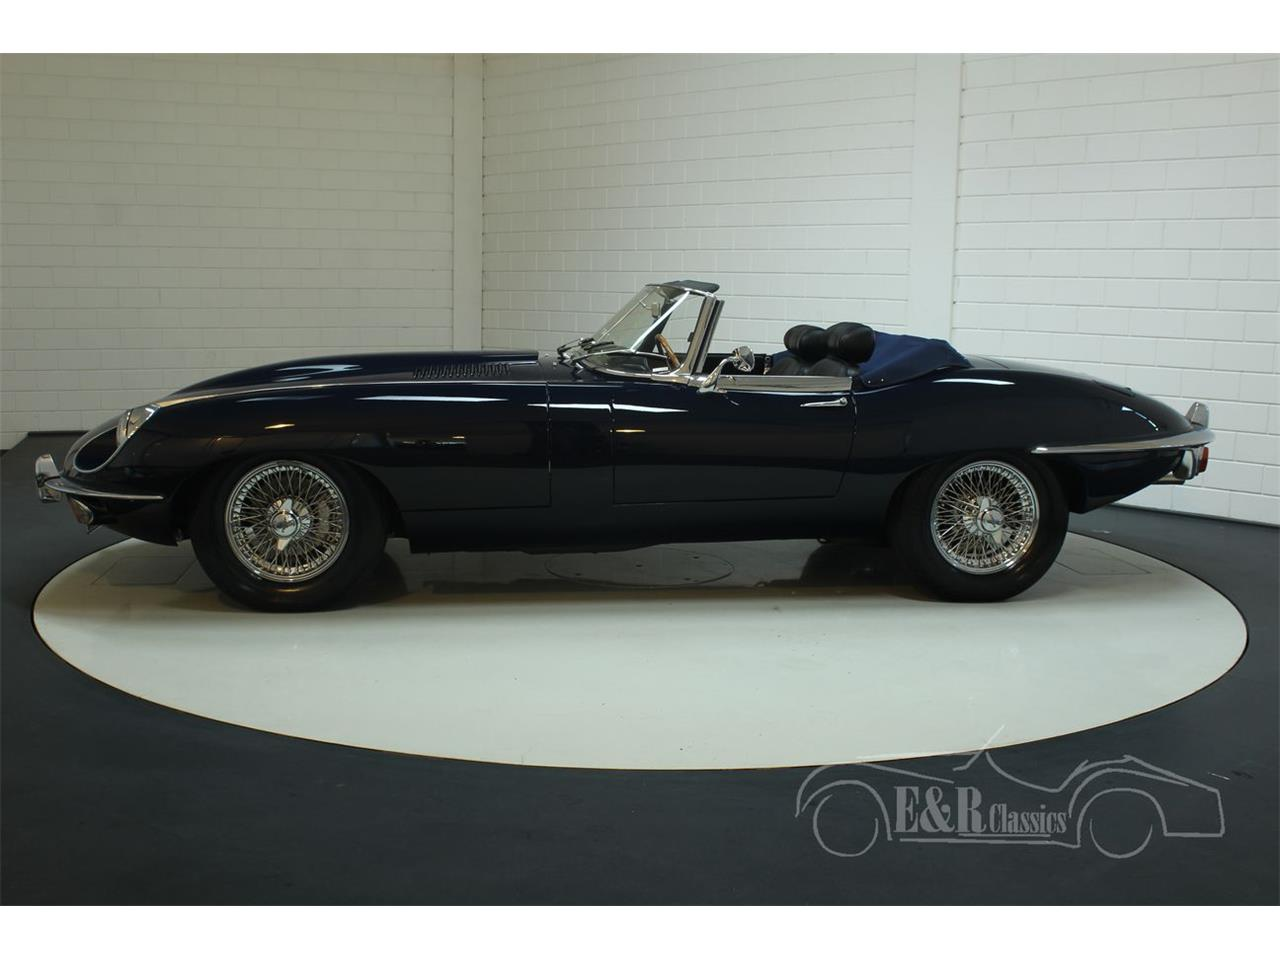 Large Picture of 1969 Jaguar E-Type located in Noord-Brabant - $139,400.00 Offered by E & R Classics - Q45K